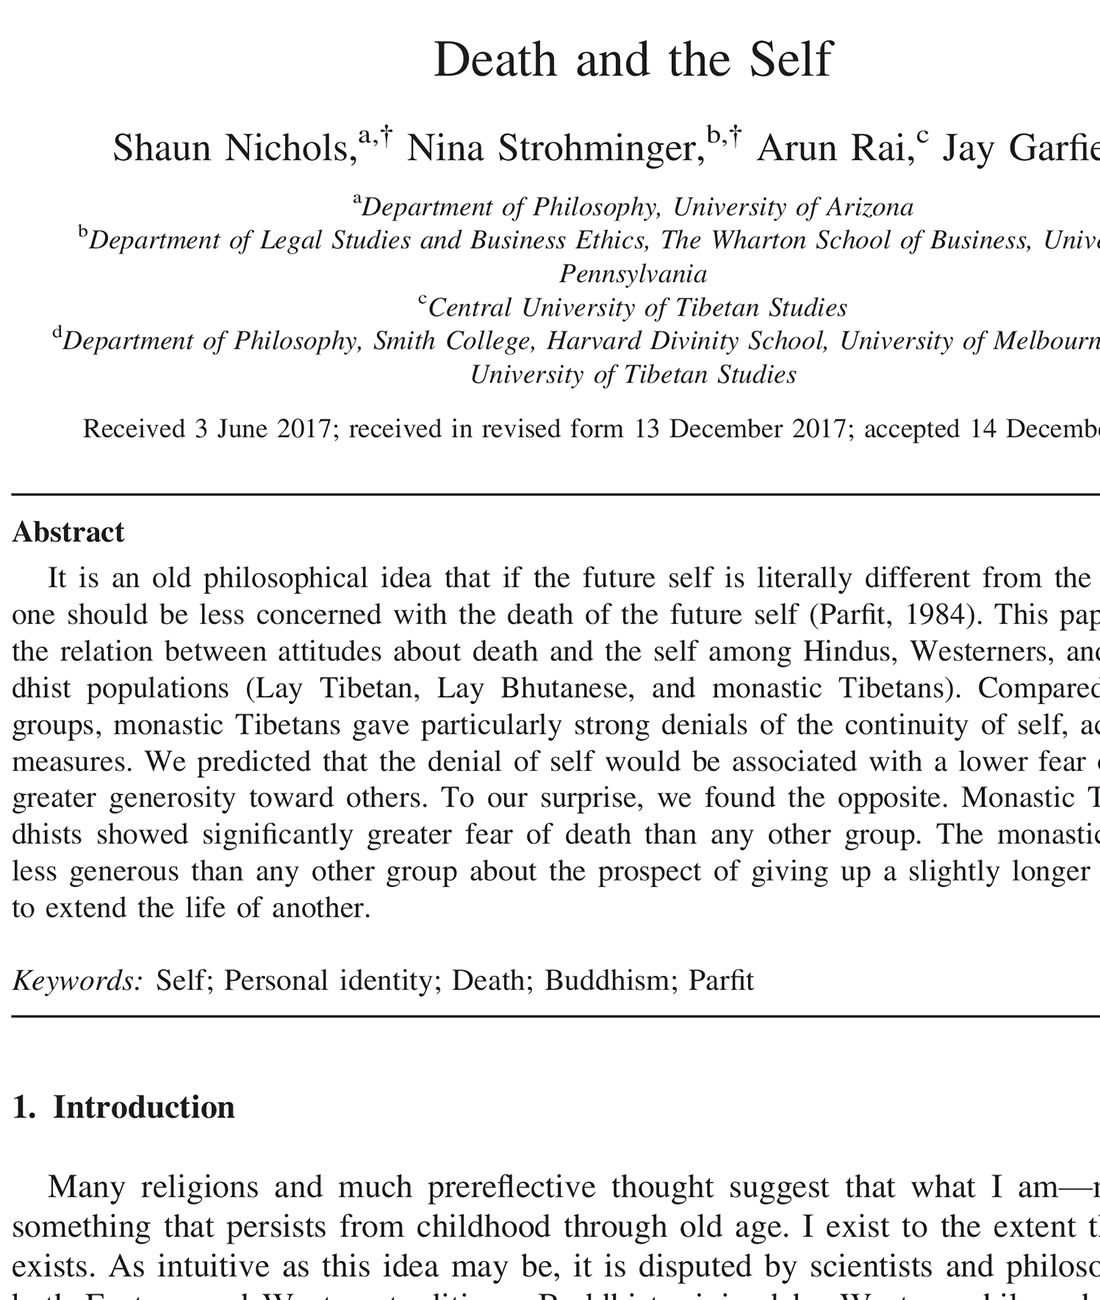 Nichols, S., Strohminger, N., Rai, A., and Garfield, J. (in press). Death and the self. Cognitive Science.